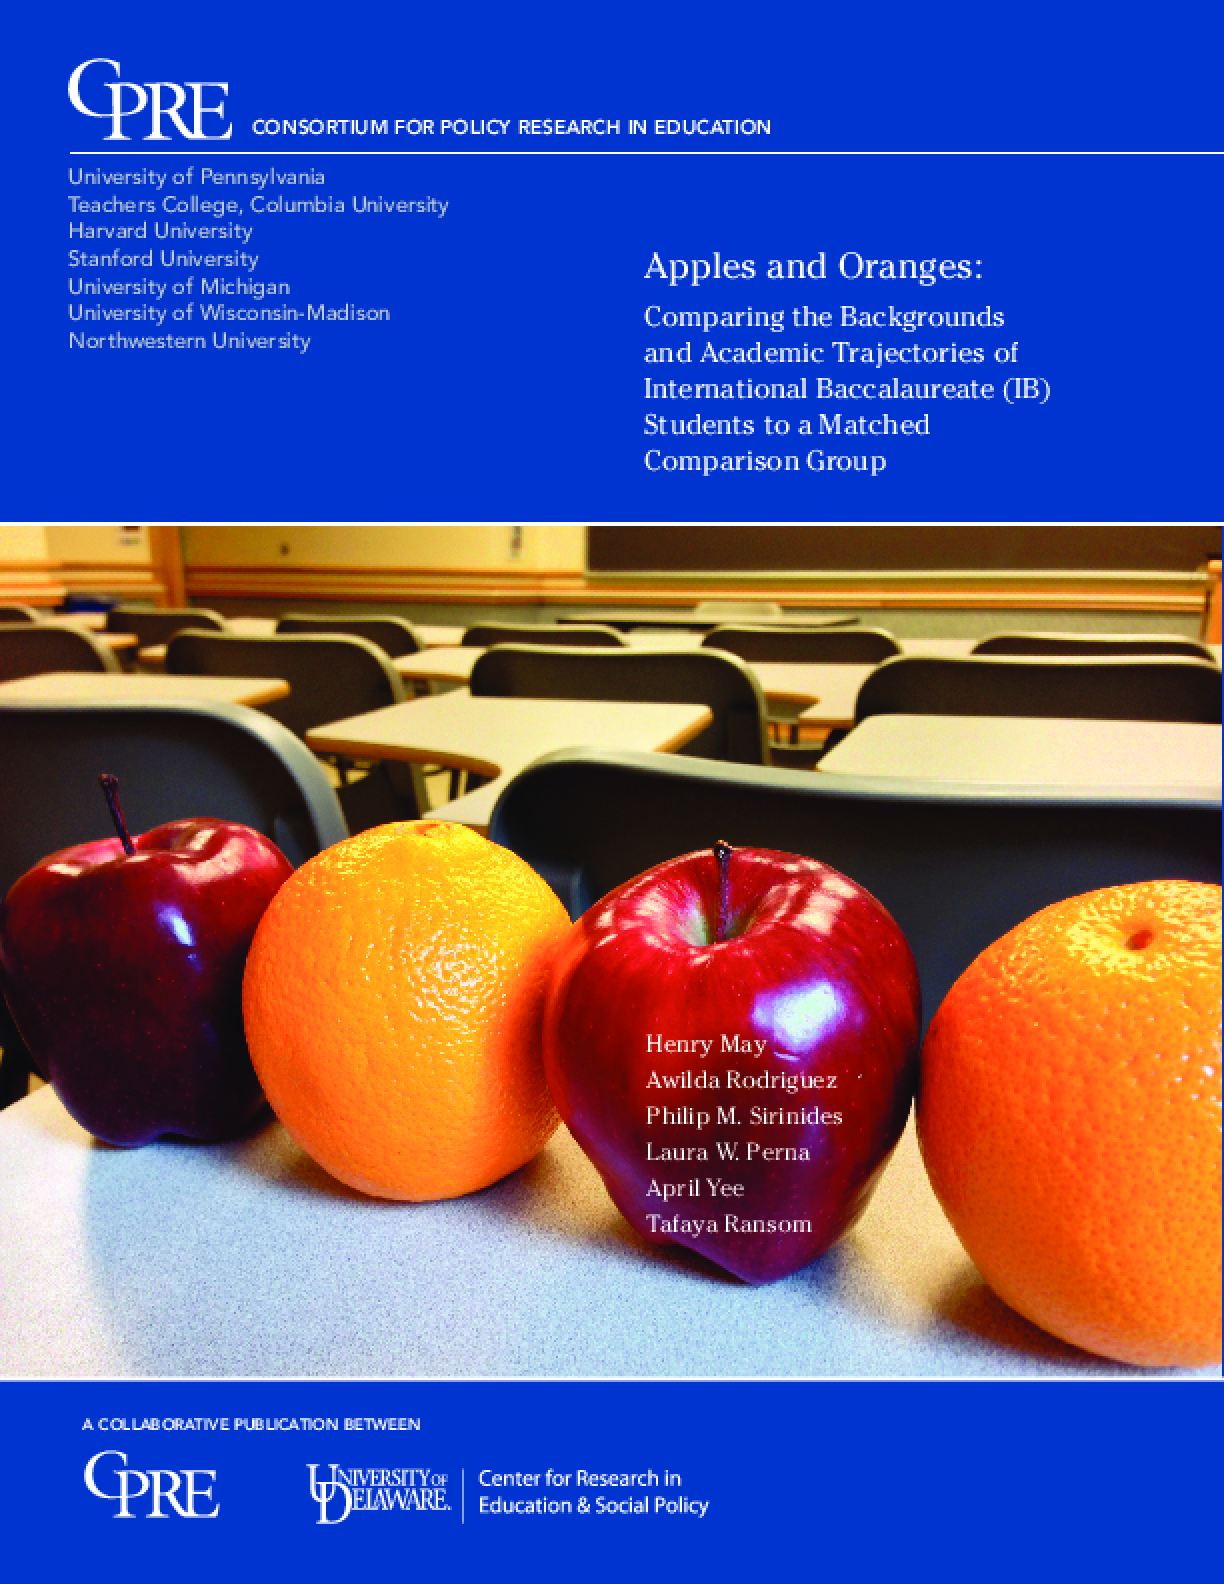 Apples and Oranges: Comparing the Backgrounds and Academic Trajectories of International Baccalaureate (IB) Students to a Matched Comparison Group